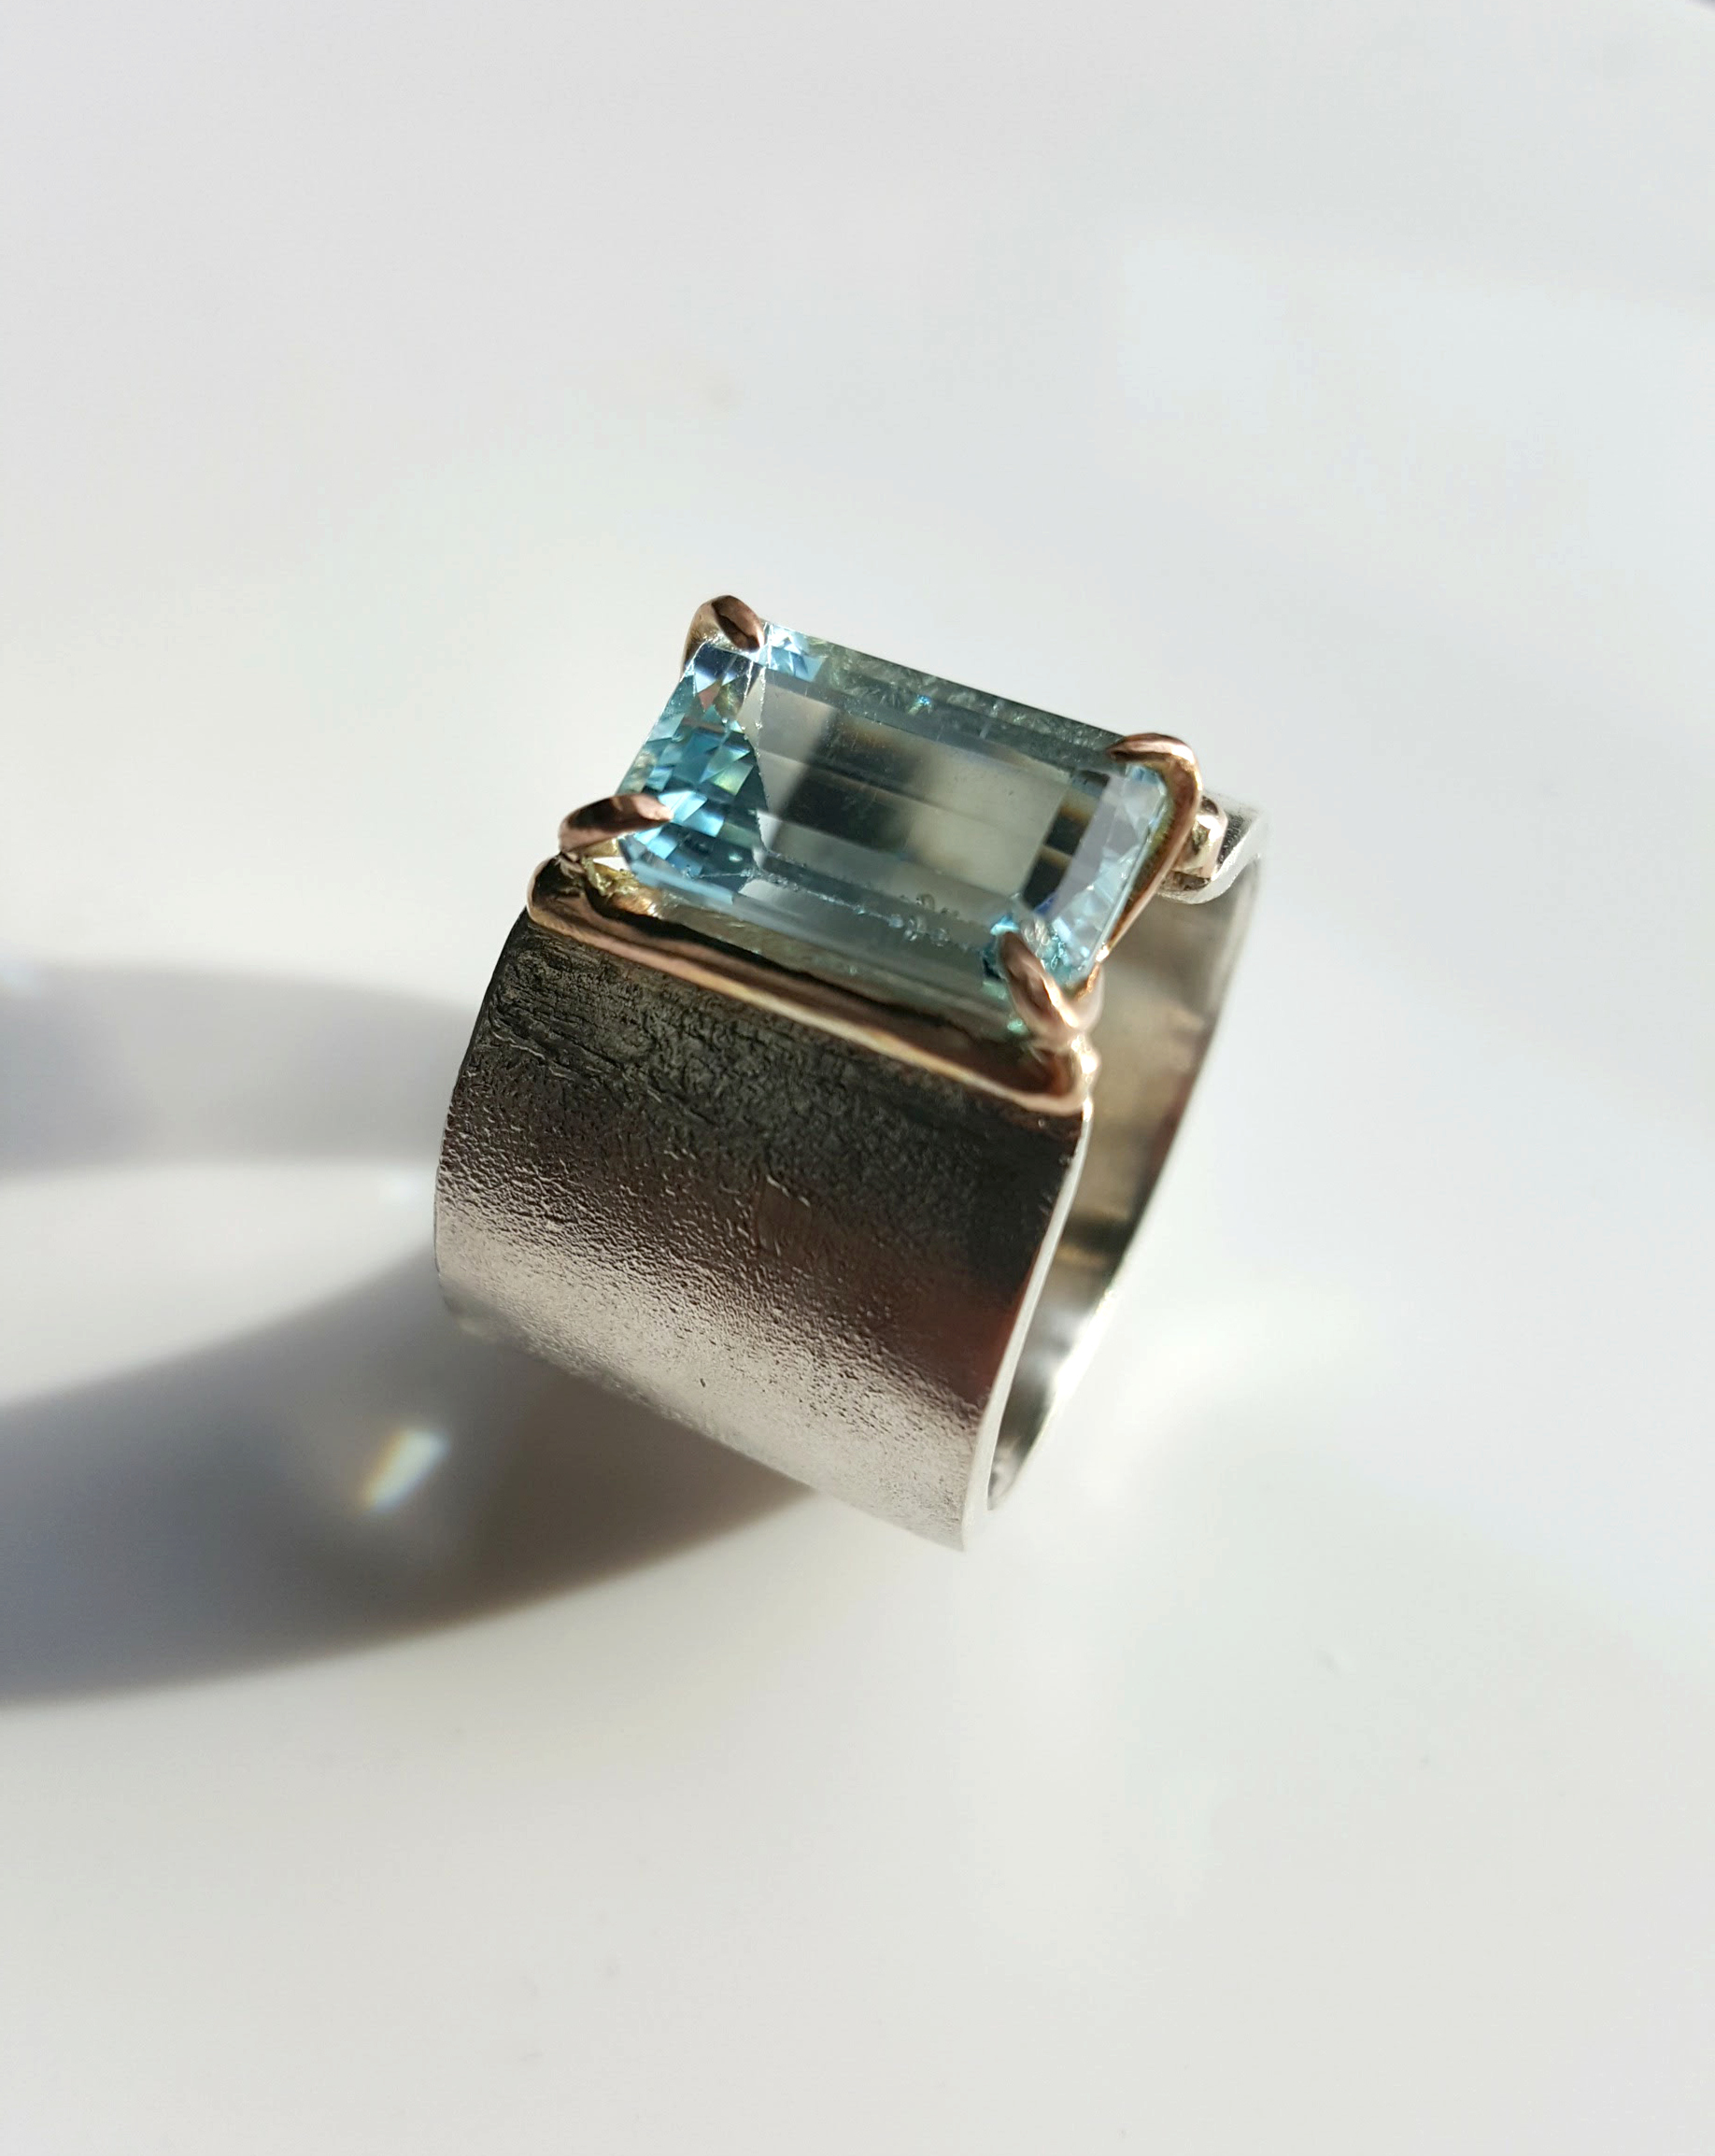 Rosie's Ring  Rosie has been dreaming of an Aquamarine ring for years now, we have discussed it many times and finally it all just fell into place with the right design and stunning stone.  This beautiful Aquamarine is set in 9ct rose gold, sterling silver band with my signature Rippled texture.